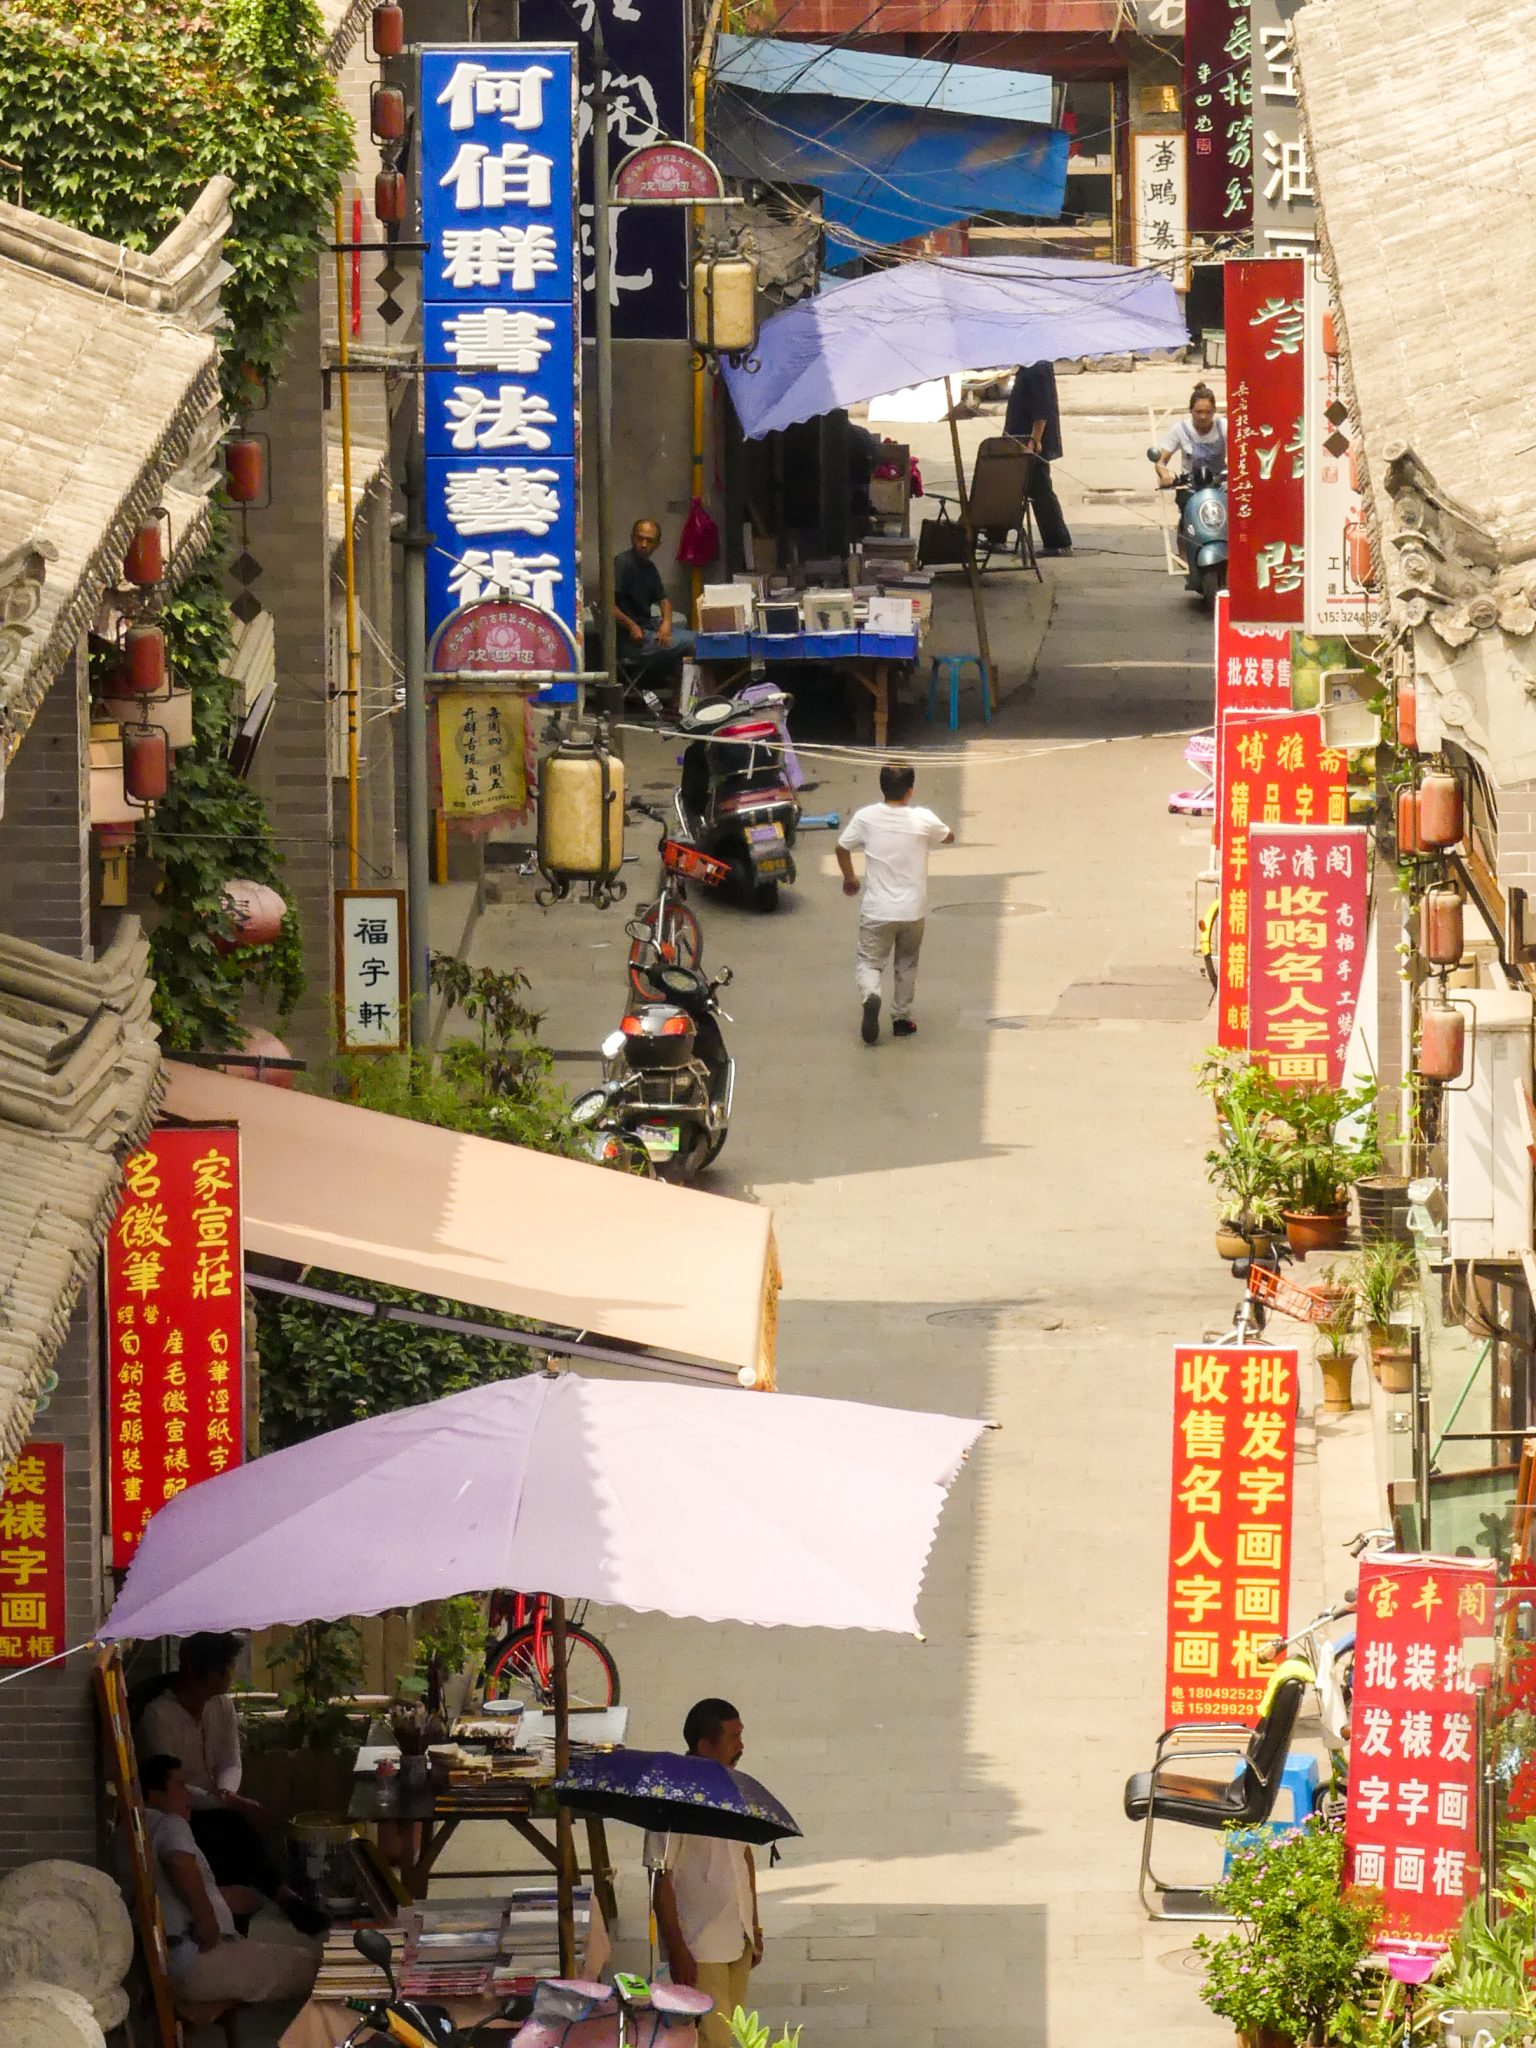 Image of a Chinese Street